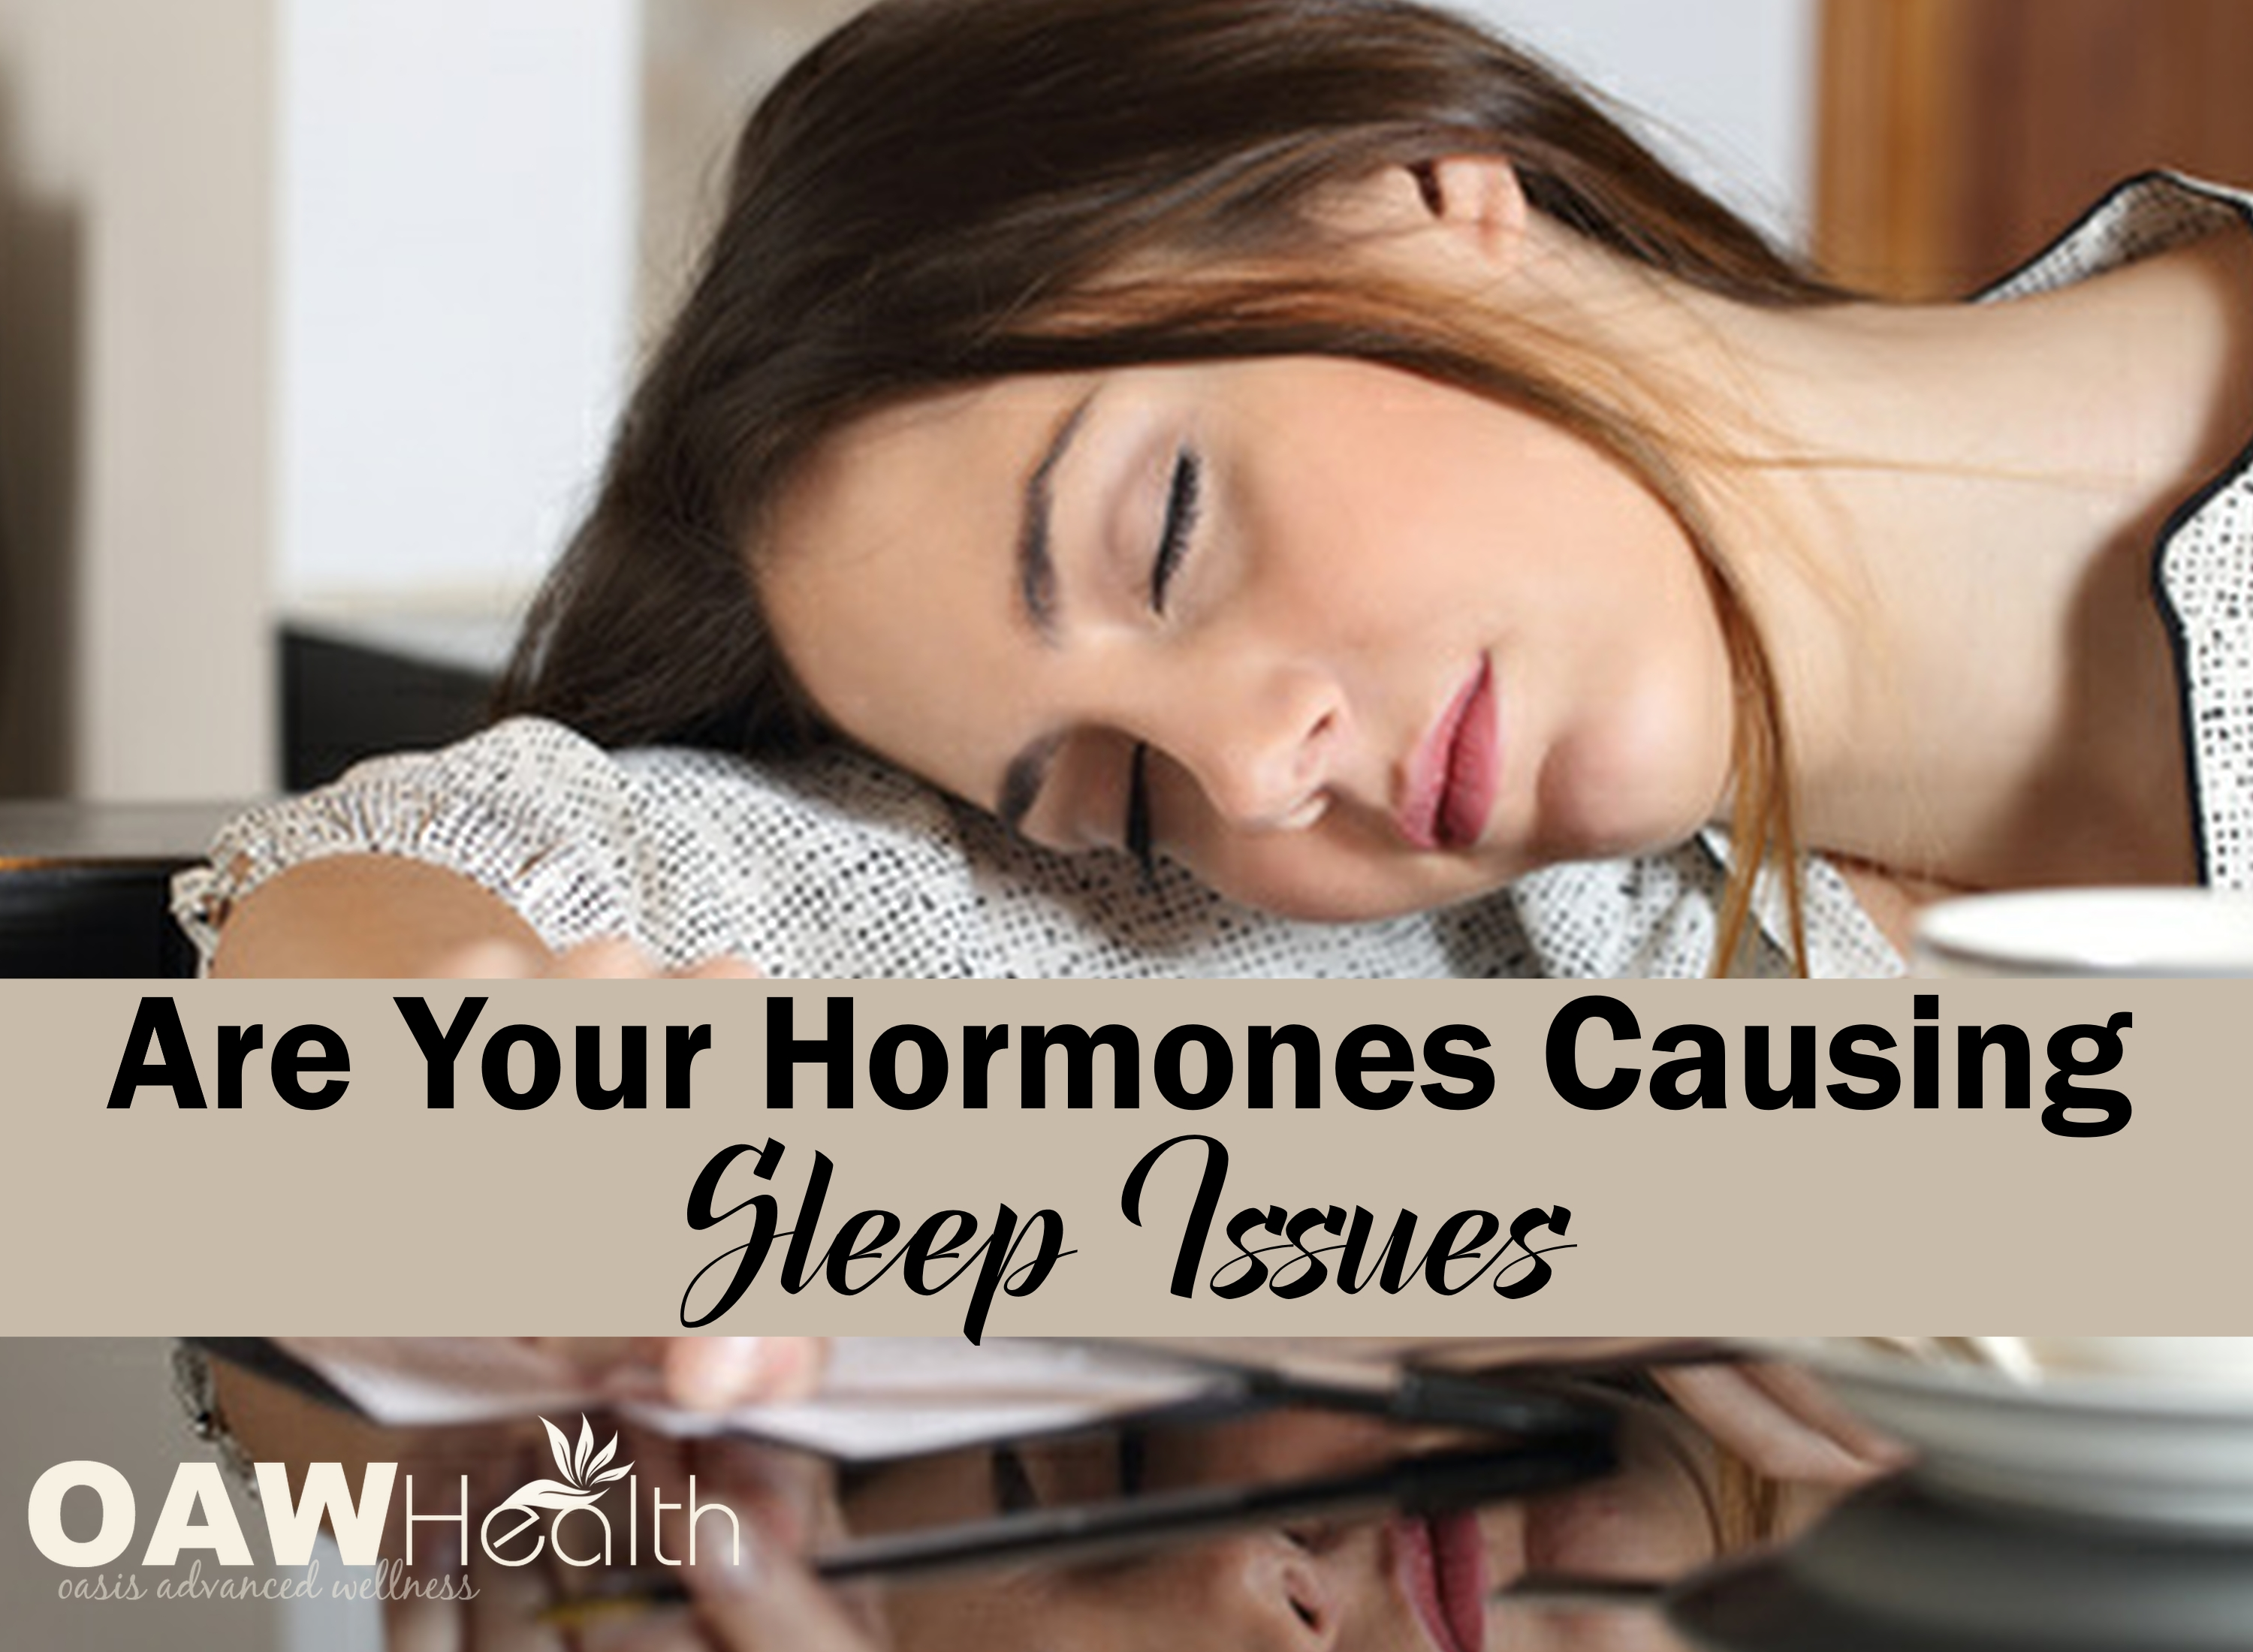 Are Your Hormones Causing Sleep Issues?